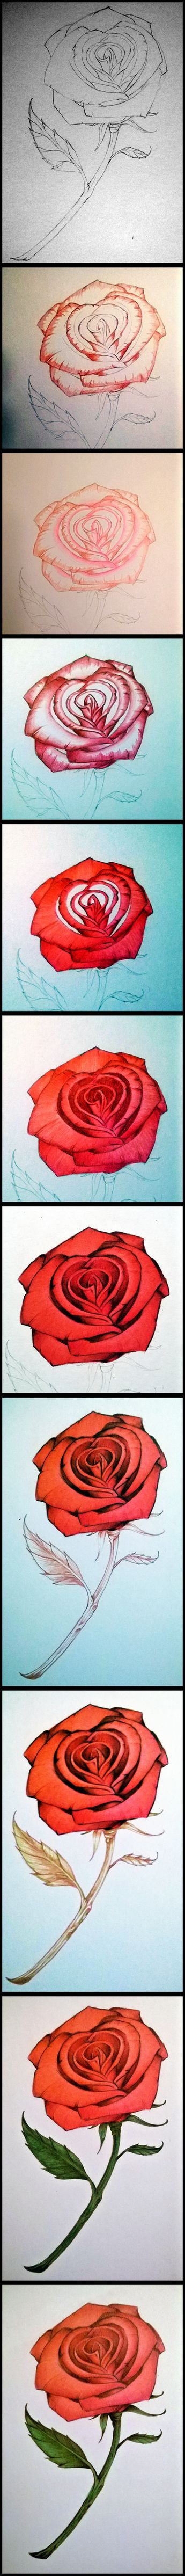 Drawn red rose base 25+ to a The How